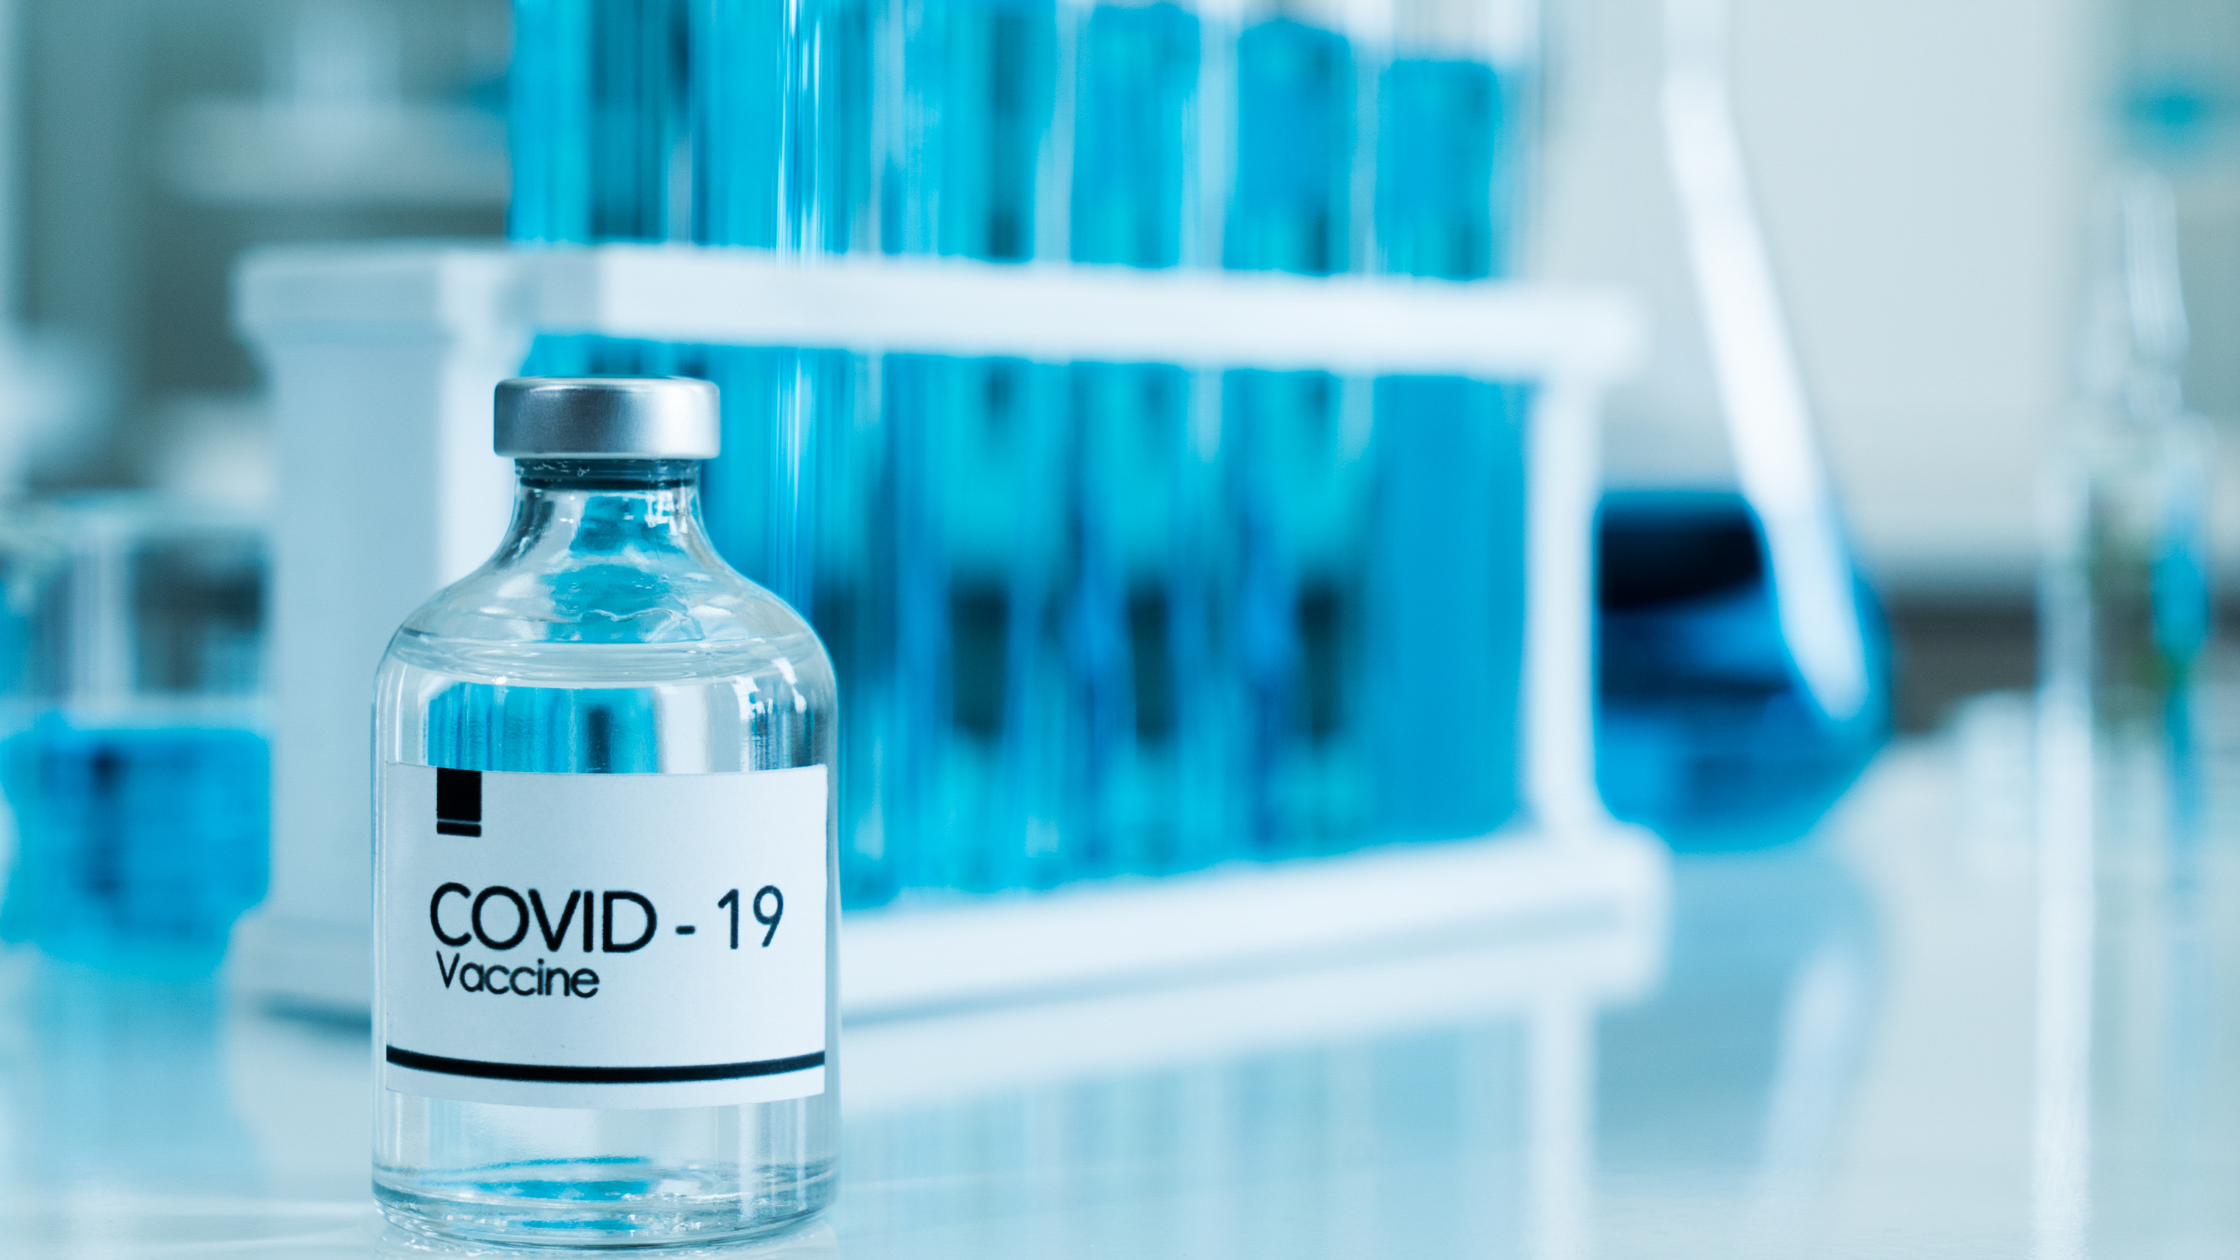 How Does the COVID-19 Vaccine Impact the UK Property Market?